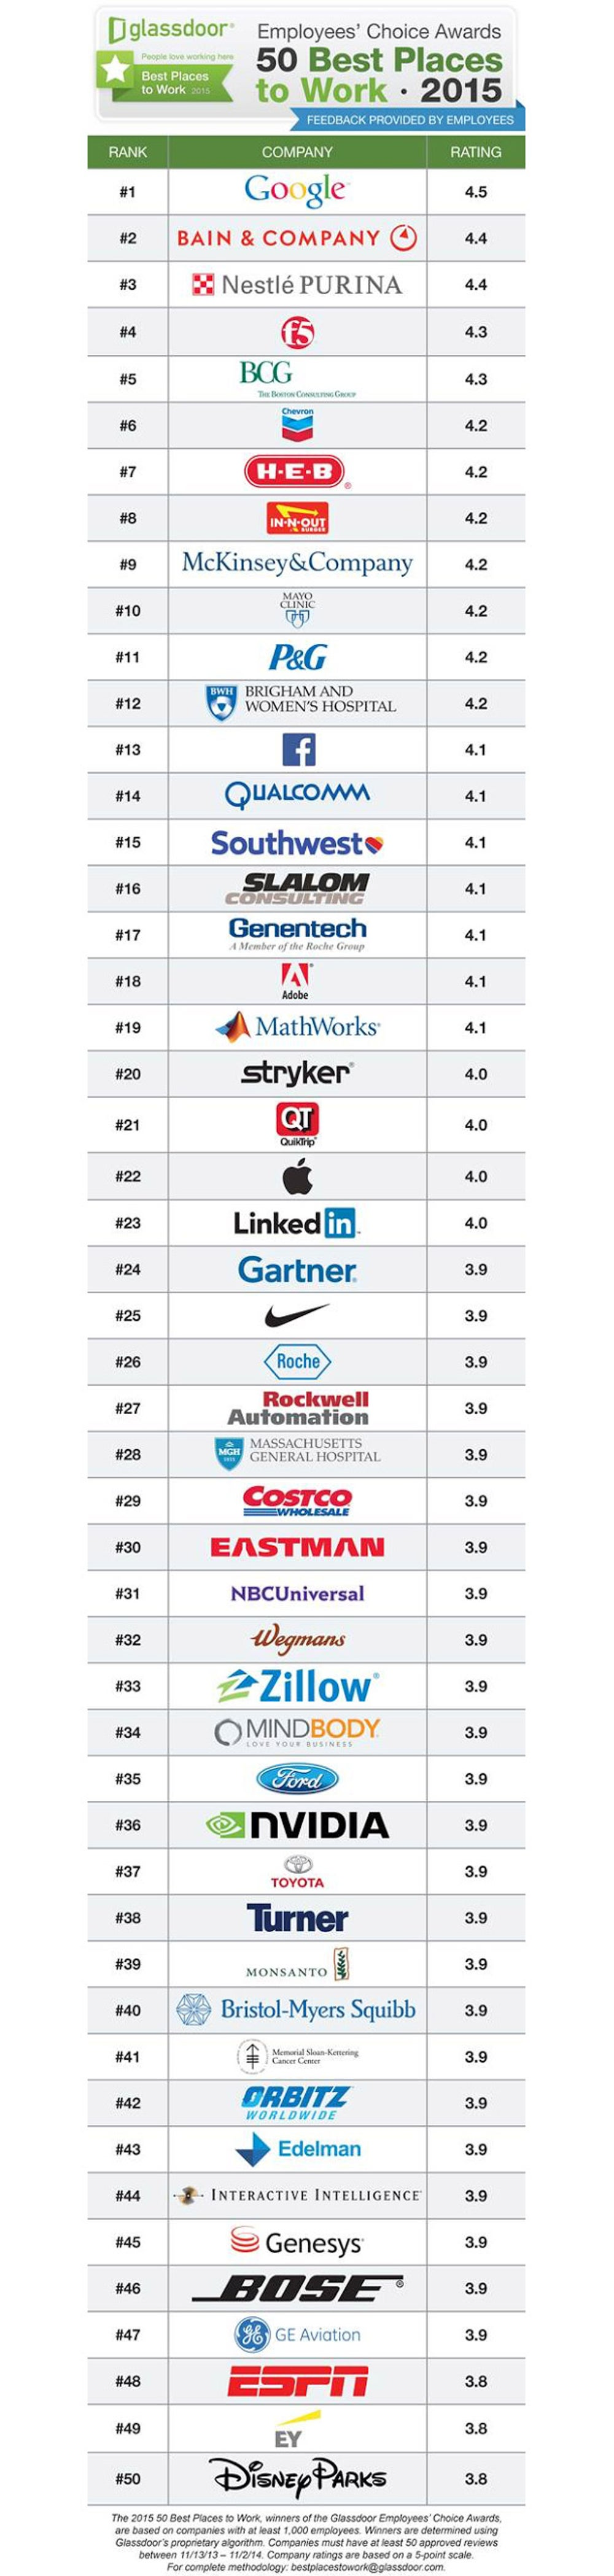 Glassdoor's 50 Best Places to Work in 2015